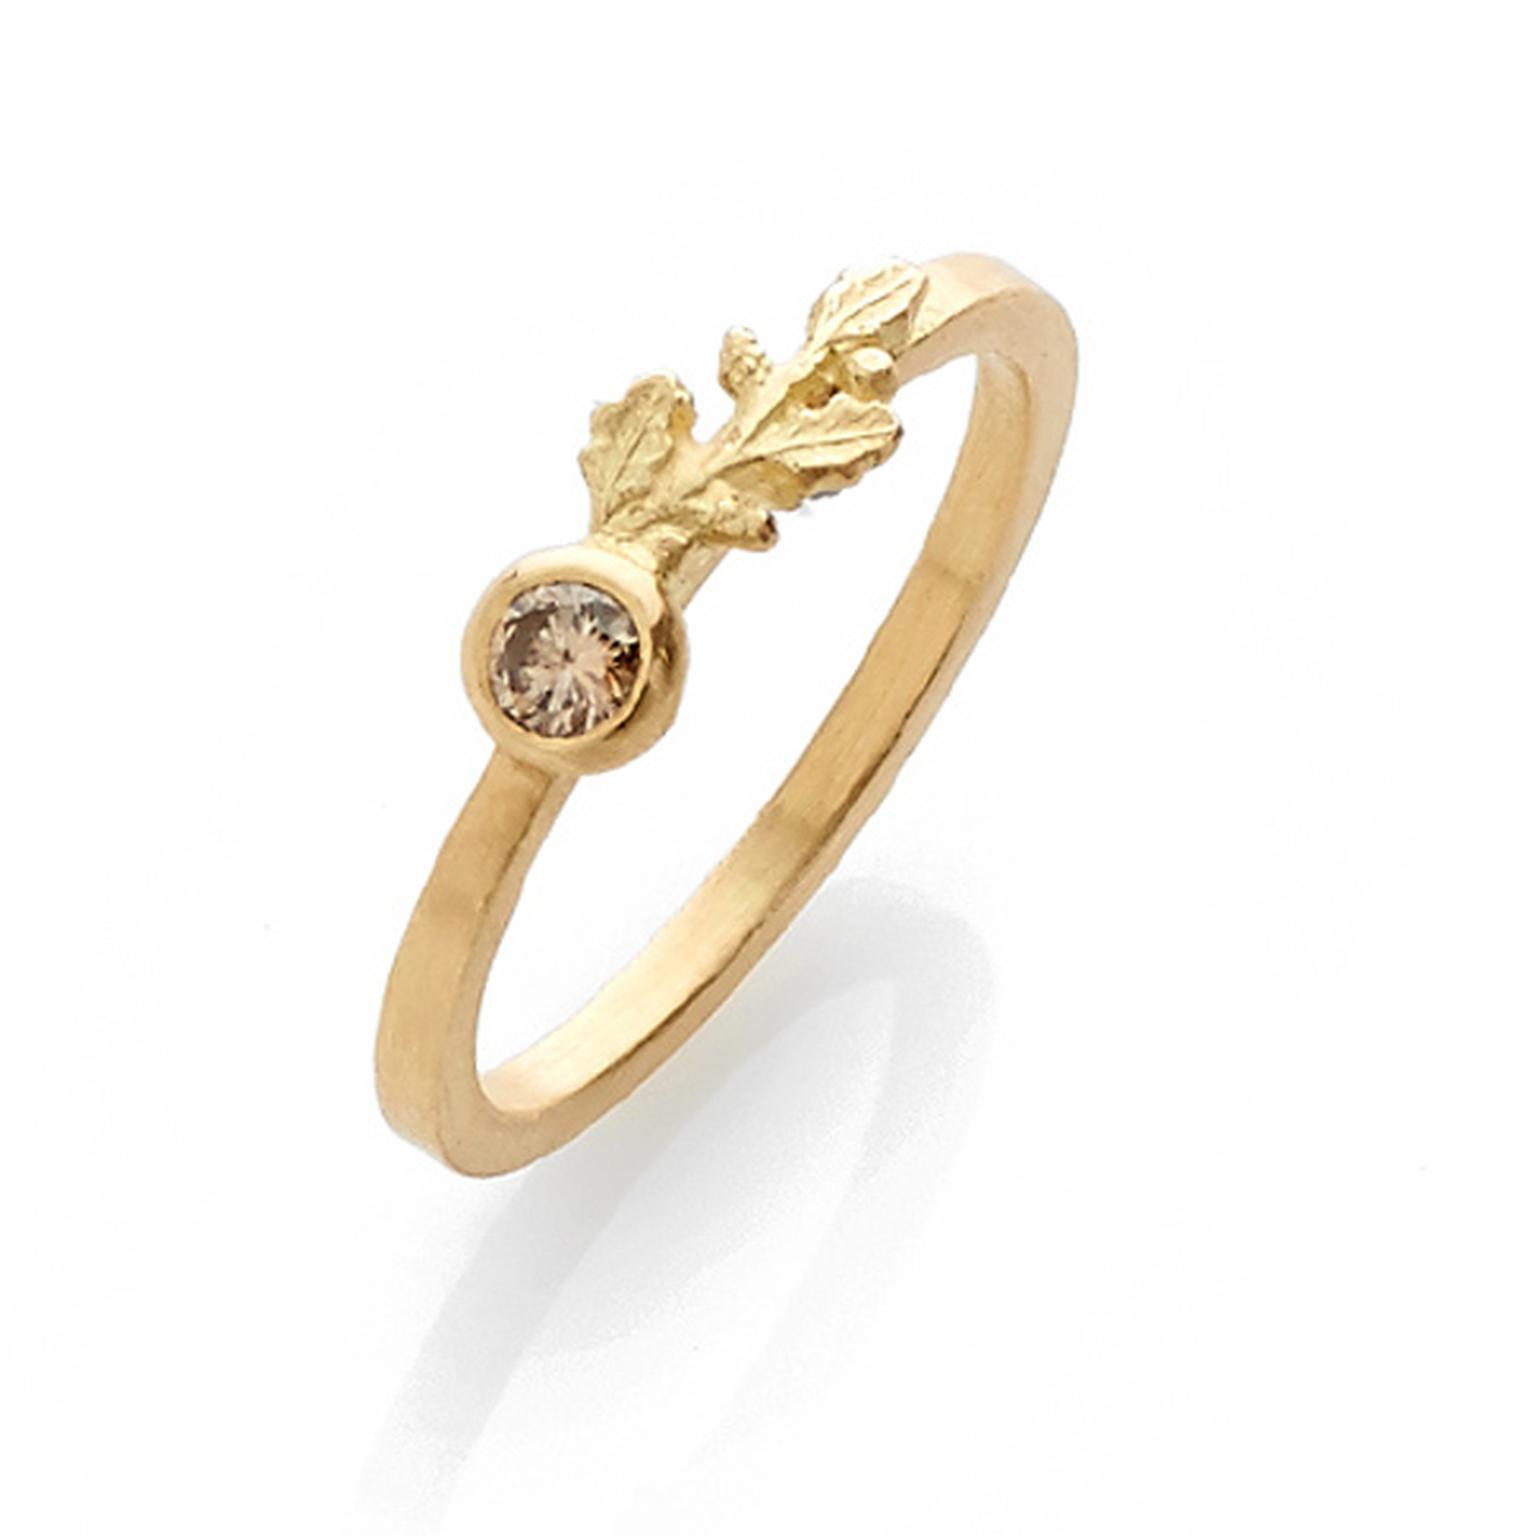 Beth Gilmour yellow gold ring with mink brown diamonds.